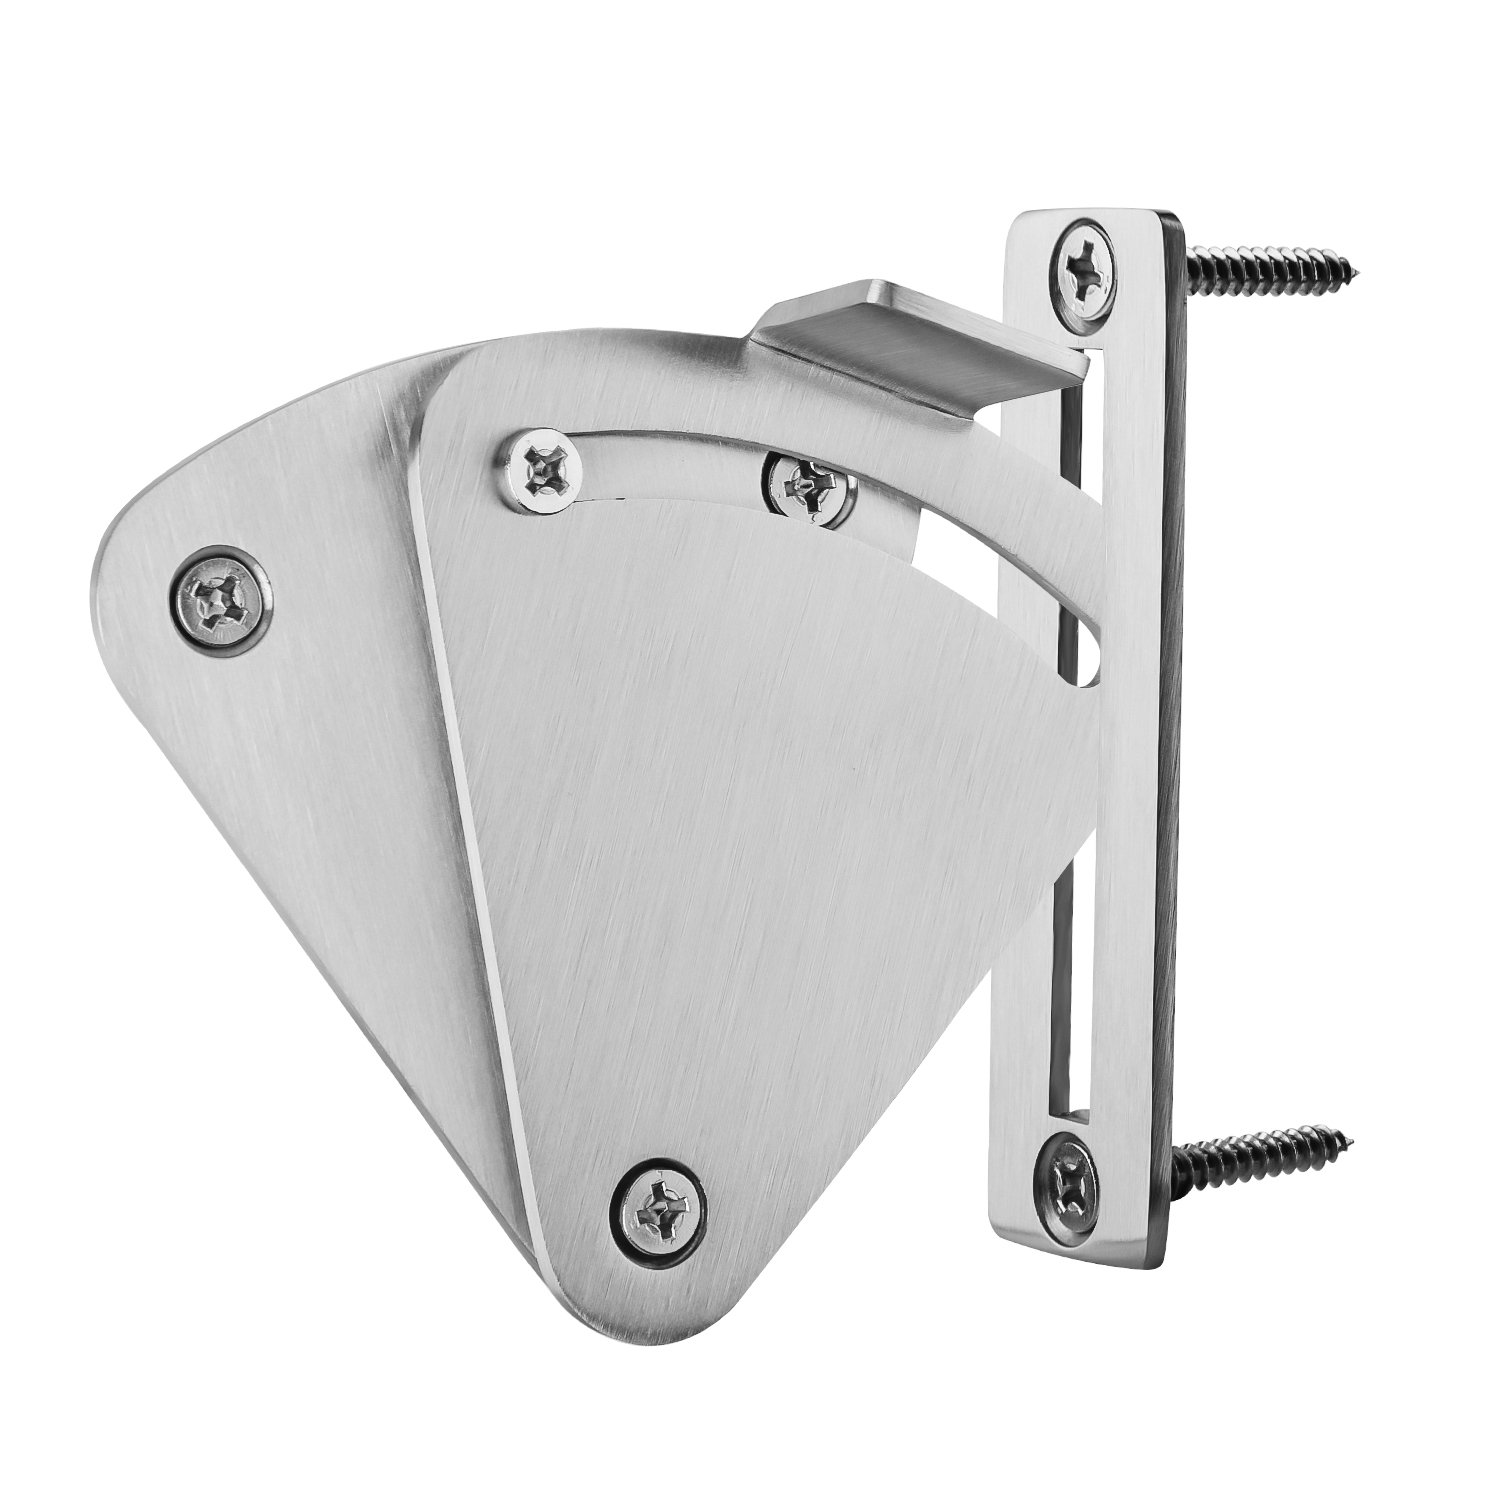 SMARTSTANDARD Barn Door Large Size Latch Lock Stainless Steel Privacy Latch Lock for Sliding Door Work for Pocket Doors Garage and Shed Wood Glass Gates